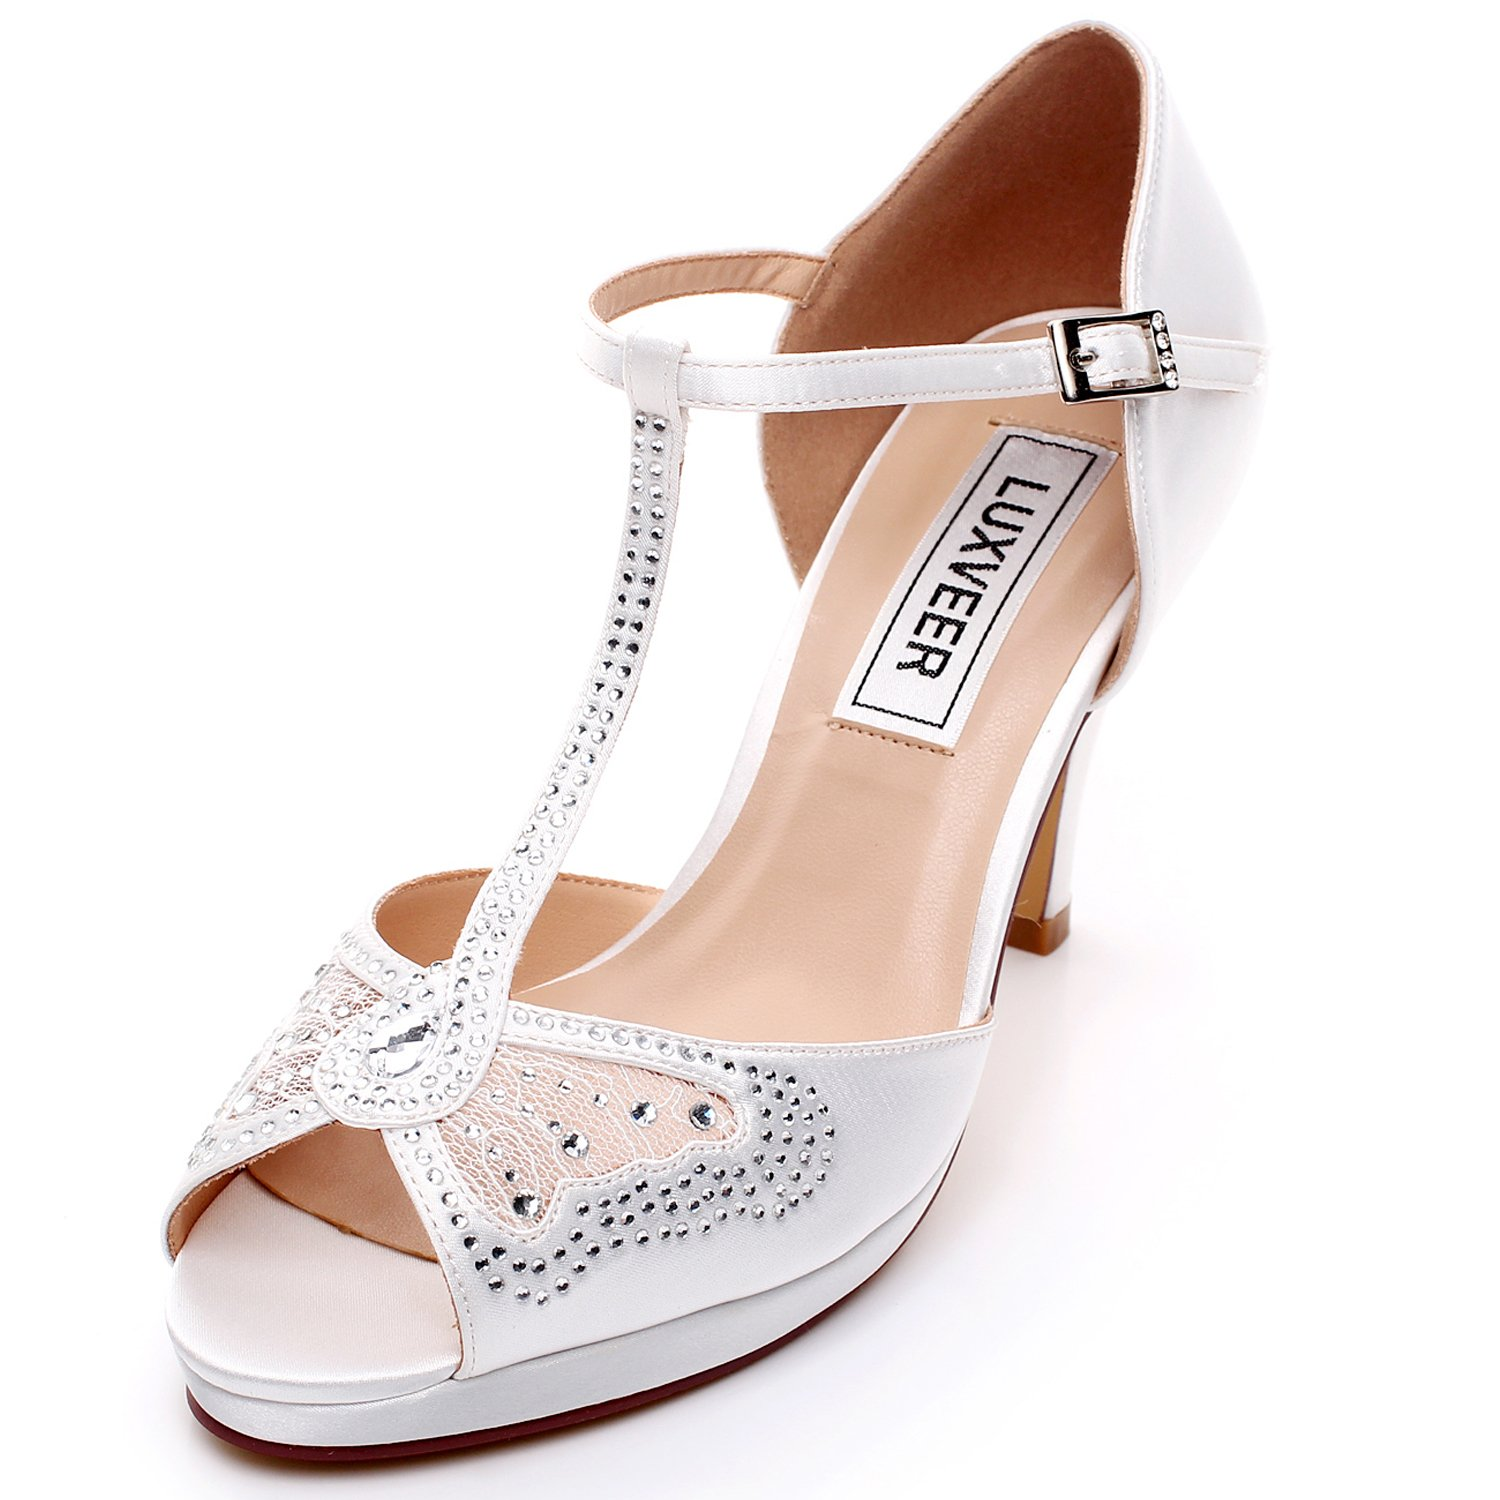 Vintage Inspired Wedding Dresses LUXVEER Women Wedding Sandals with Silver Rhinestone and Lace Butterfly - Heels 3.5inch $58.97 AT vintagedancer.com